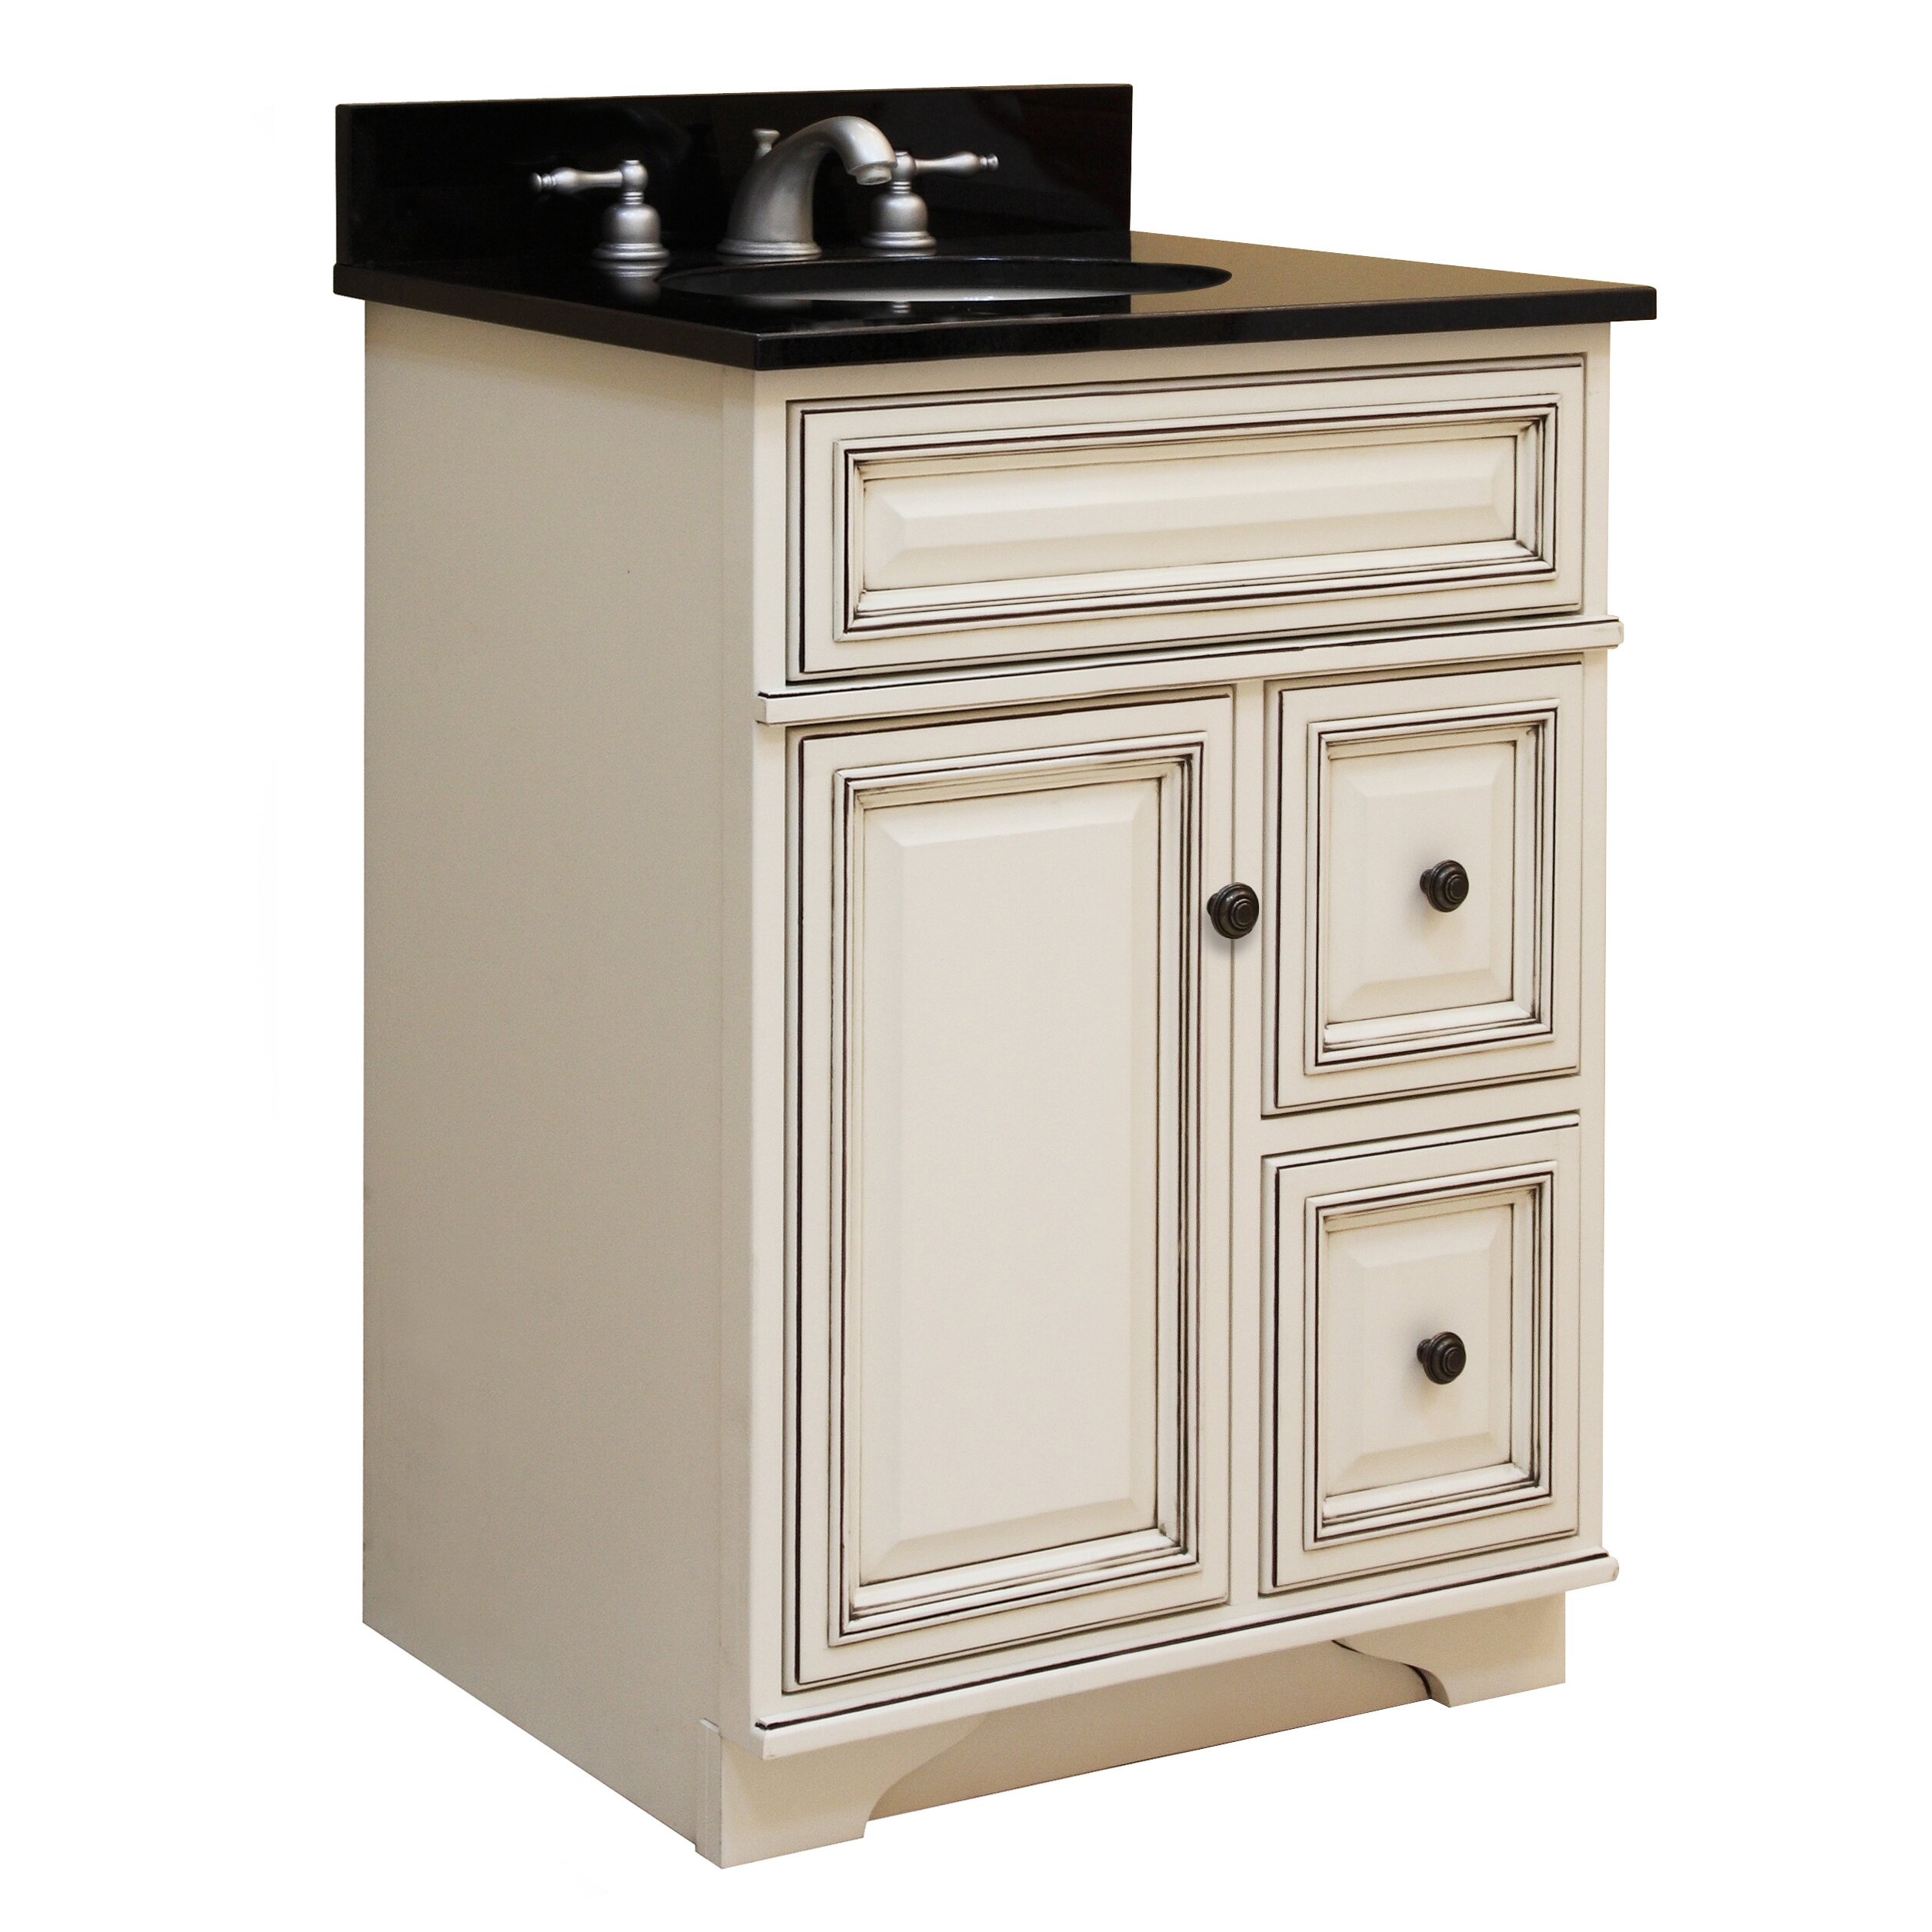 24 bathroom vanity with drawers my web value for 24 bathroom vanity with drawers